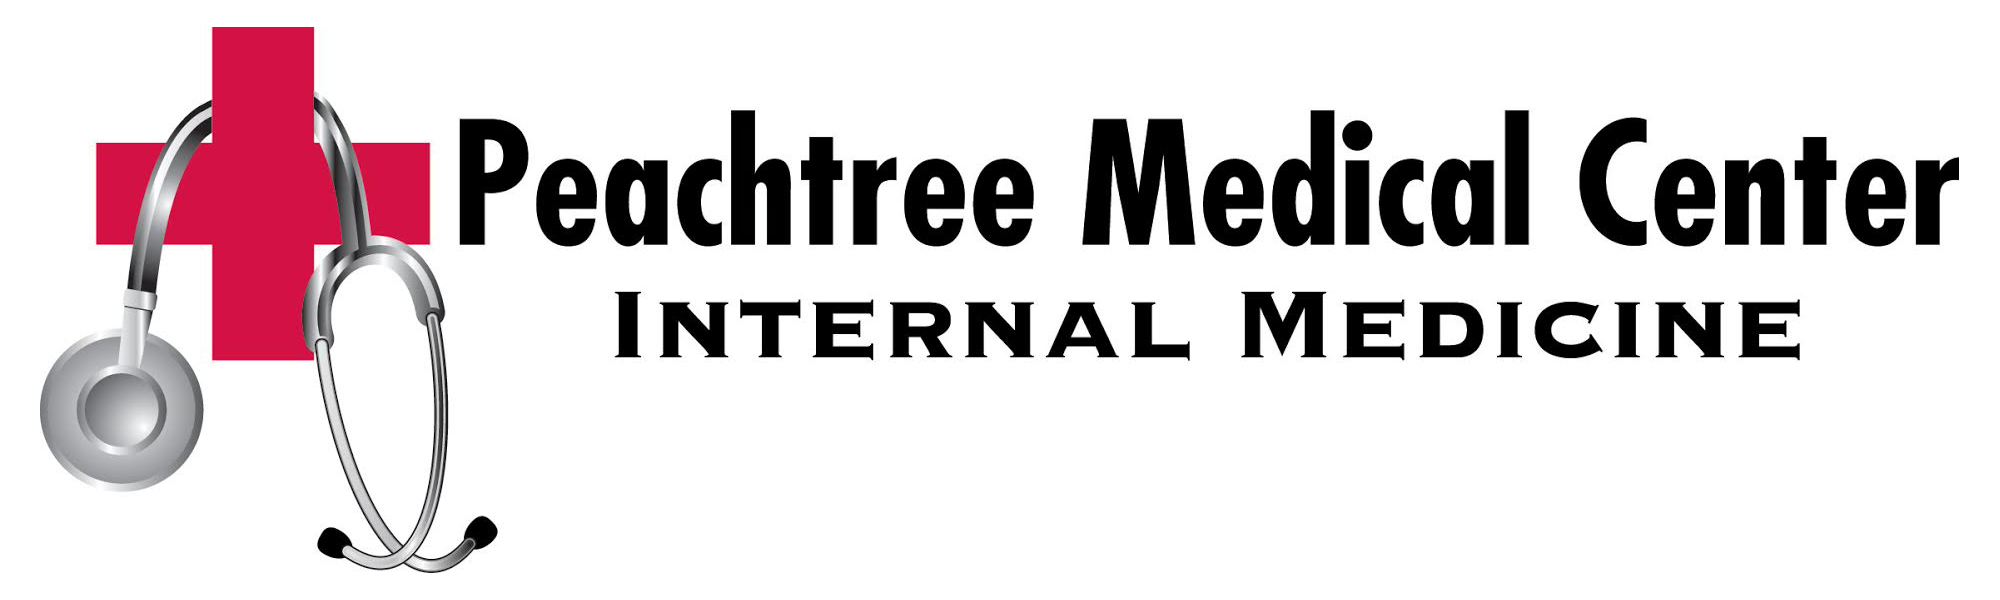 Peachtree Medical Center Logo